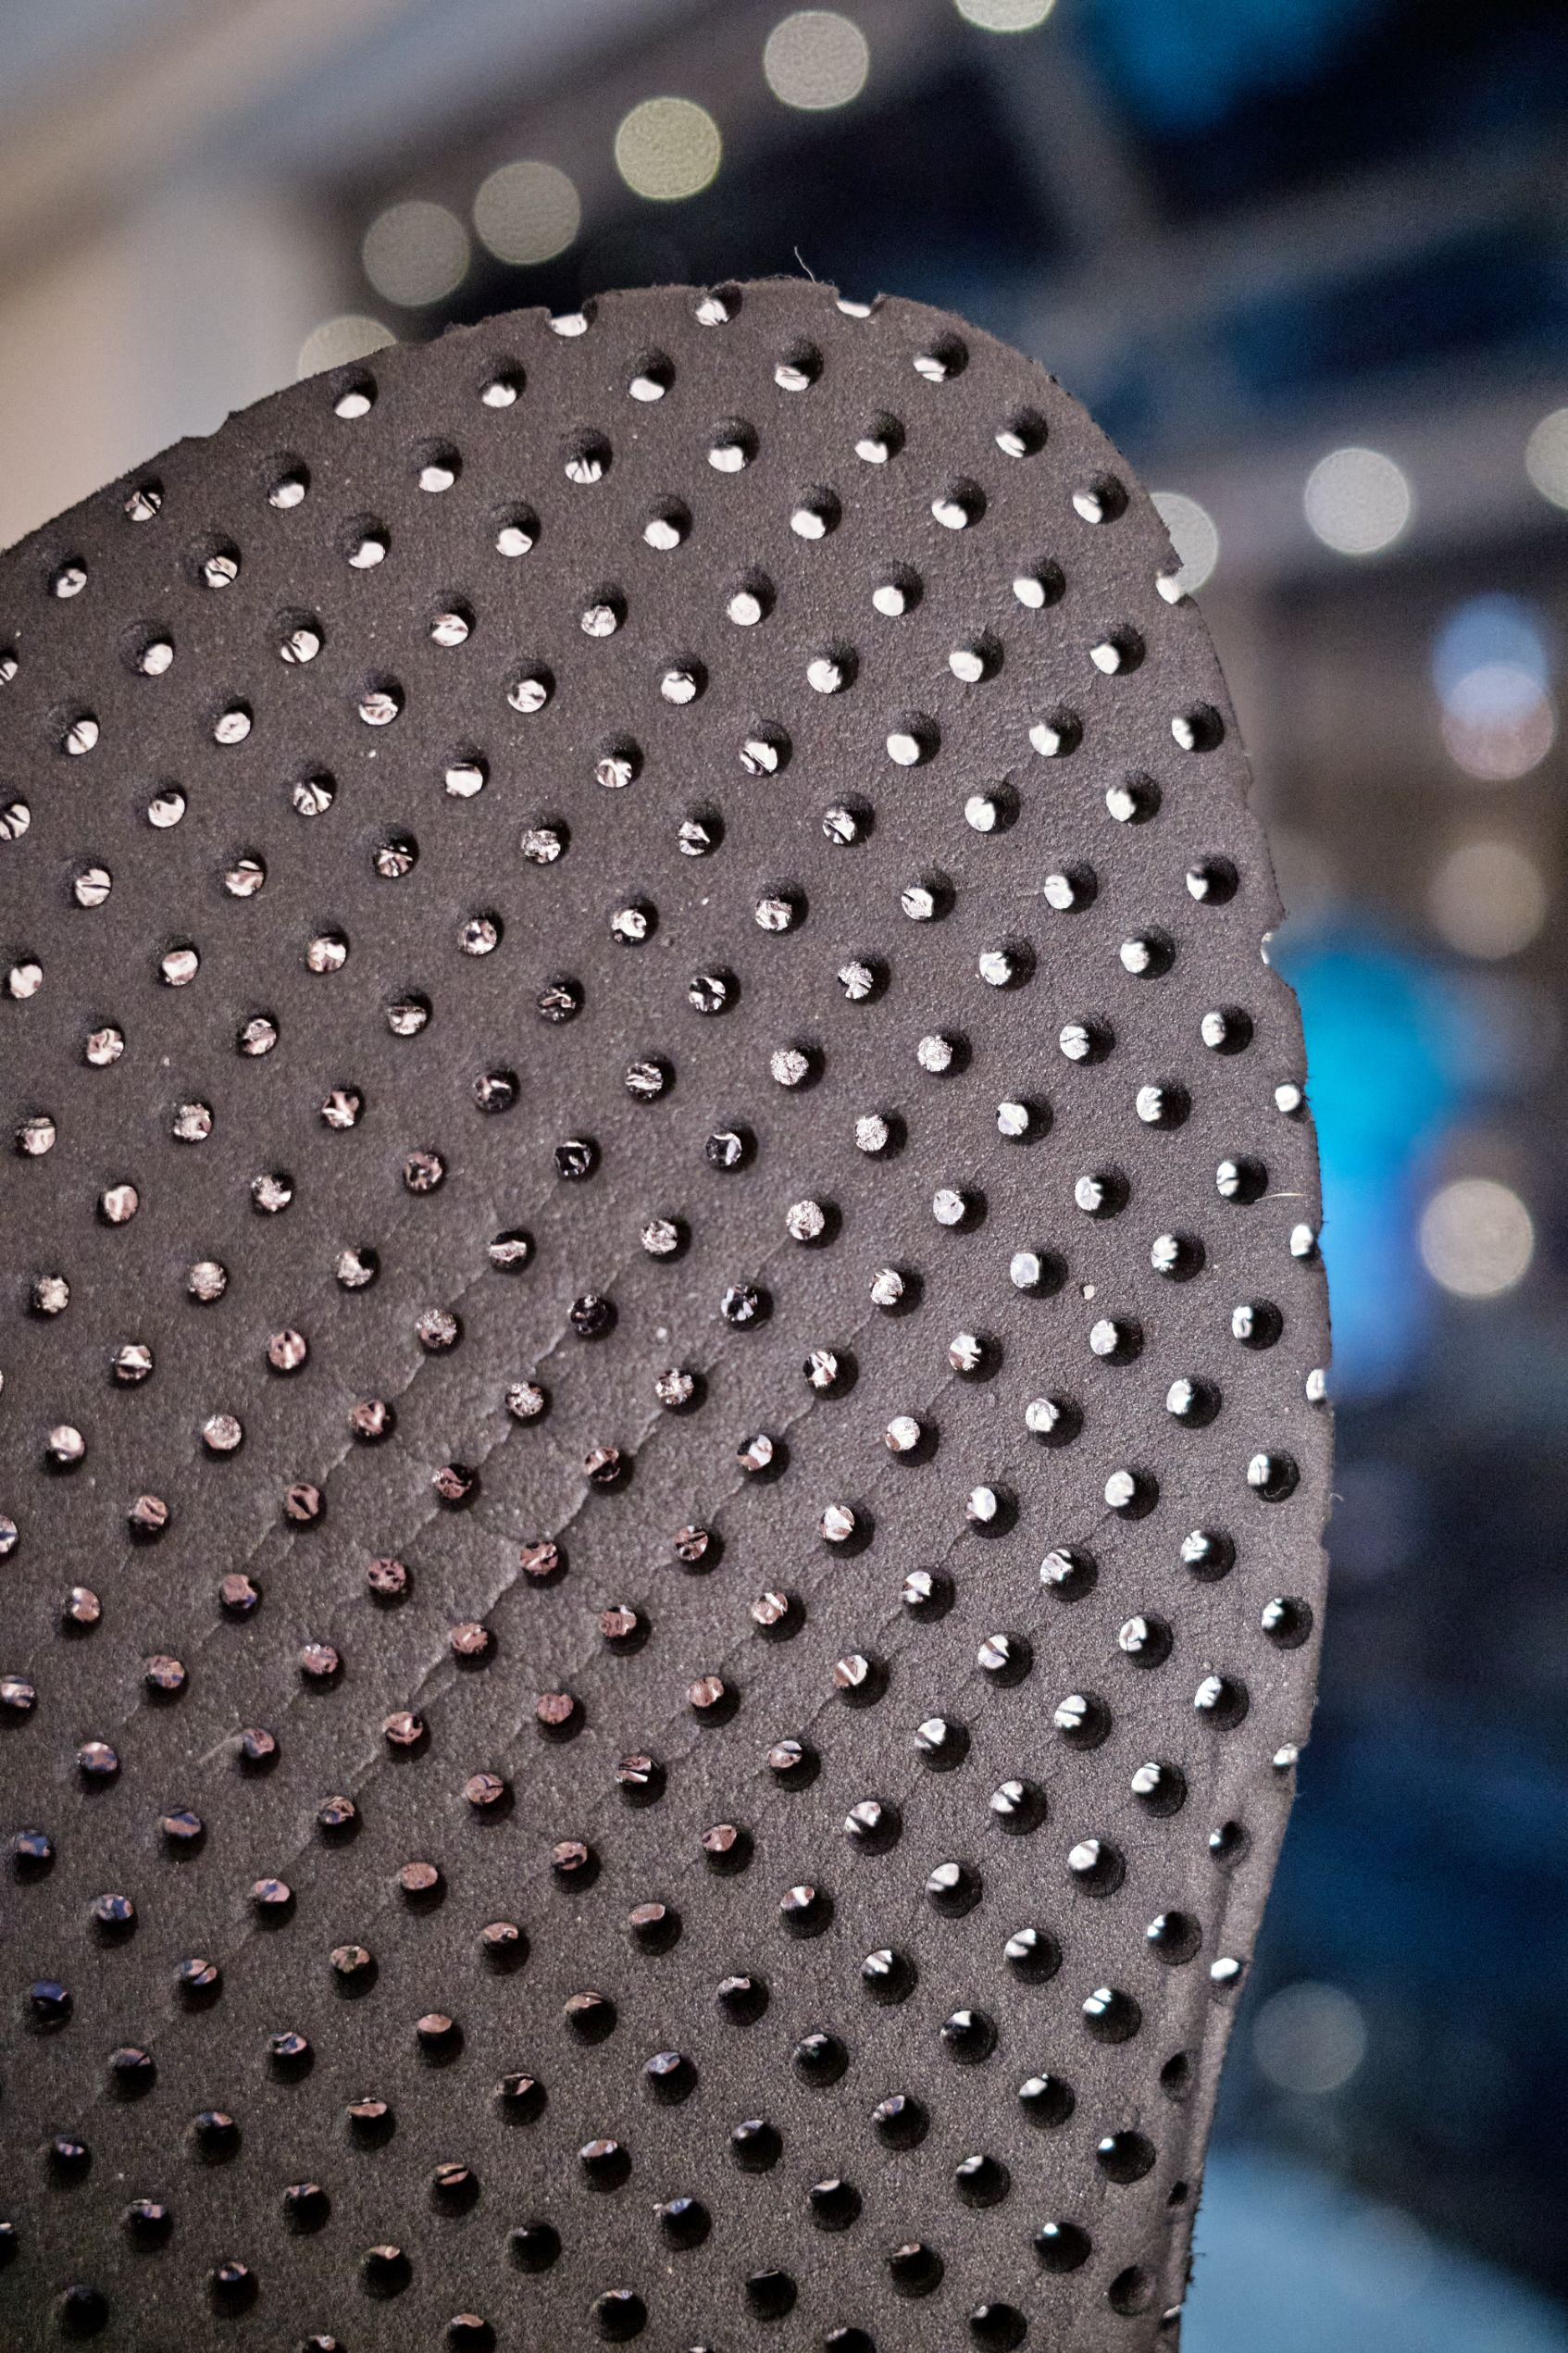 The heat-reflecting insoles of the Denver are designed to trap heat and are made from similar materials to those first developed for space exploration, emergency rescue, and post-marathon huddles